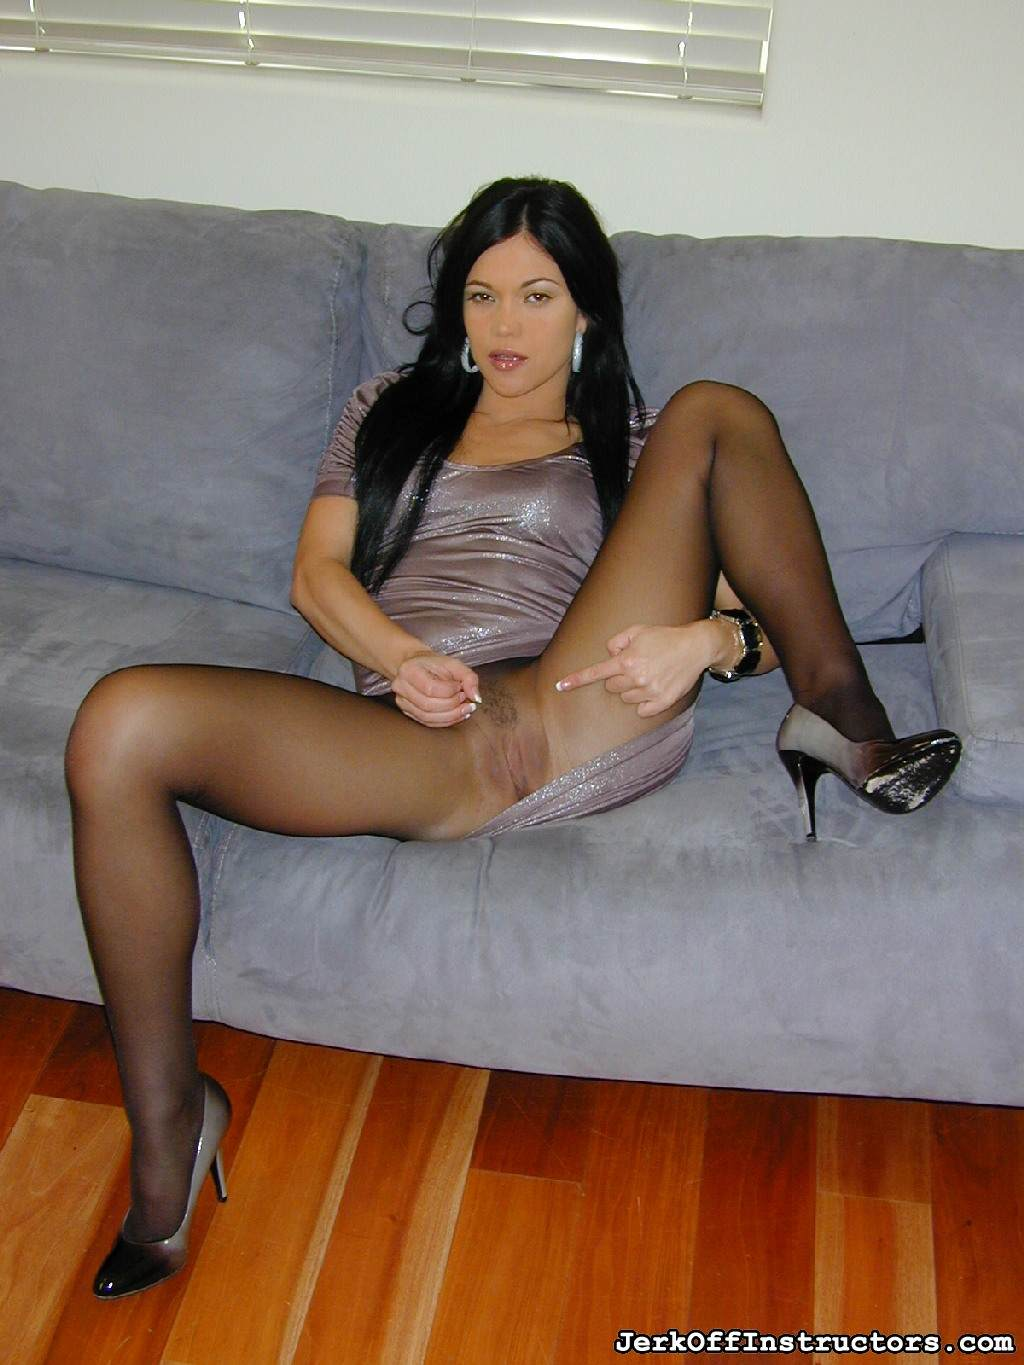 Picture #2 of Goddess is pantyhose would better deal with rubber cock than with your tiny penis: watch her inserting the toy into the hole in the nylon